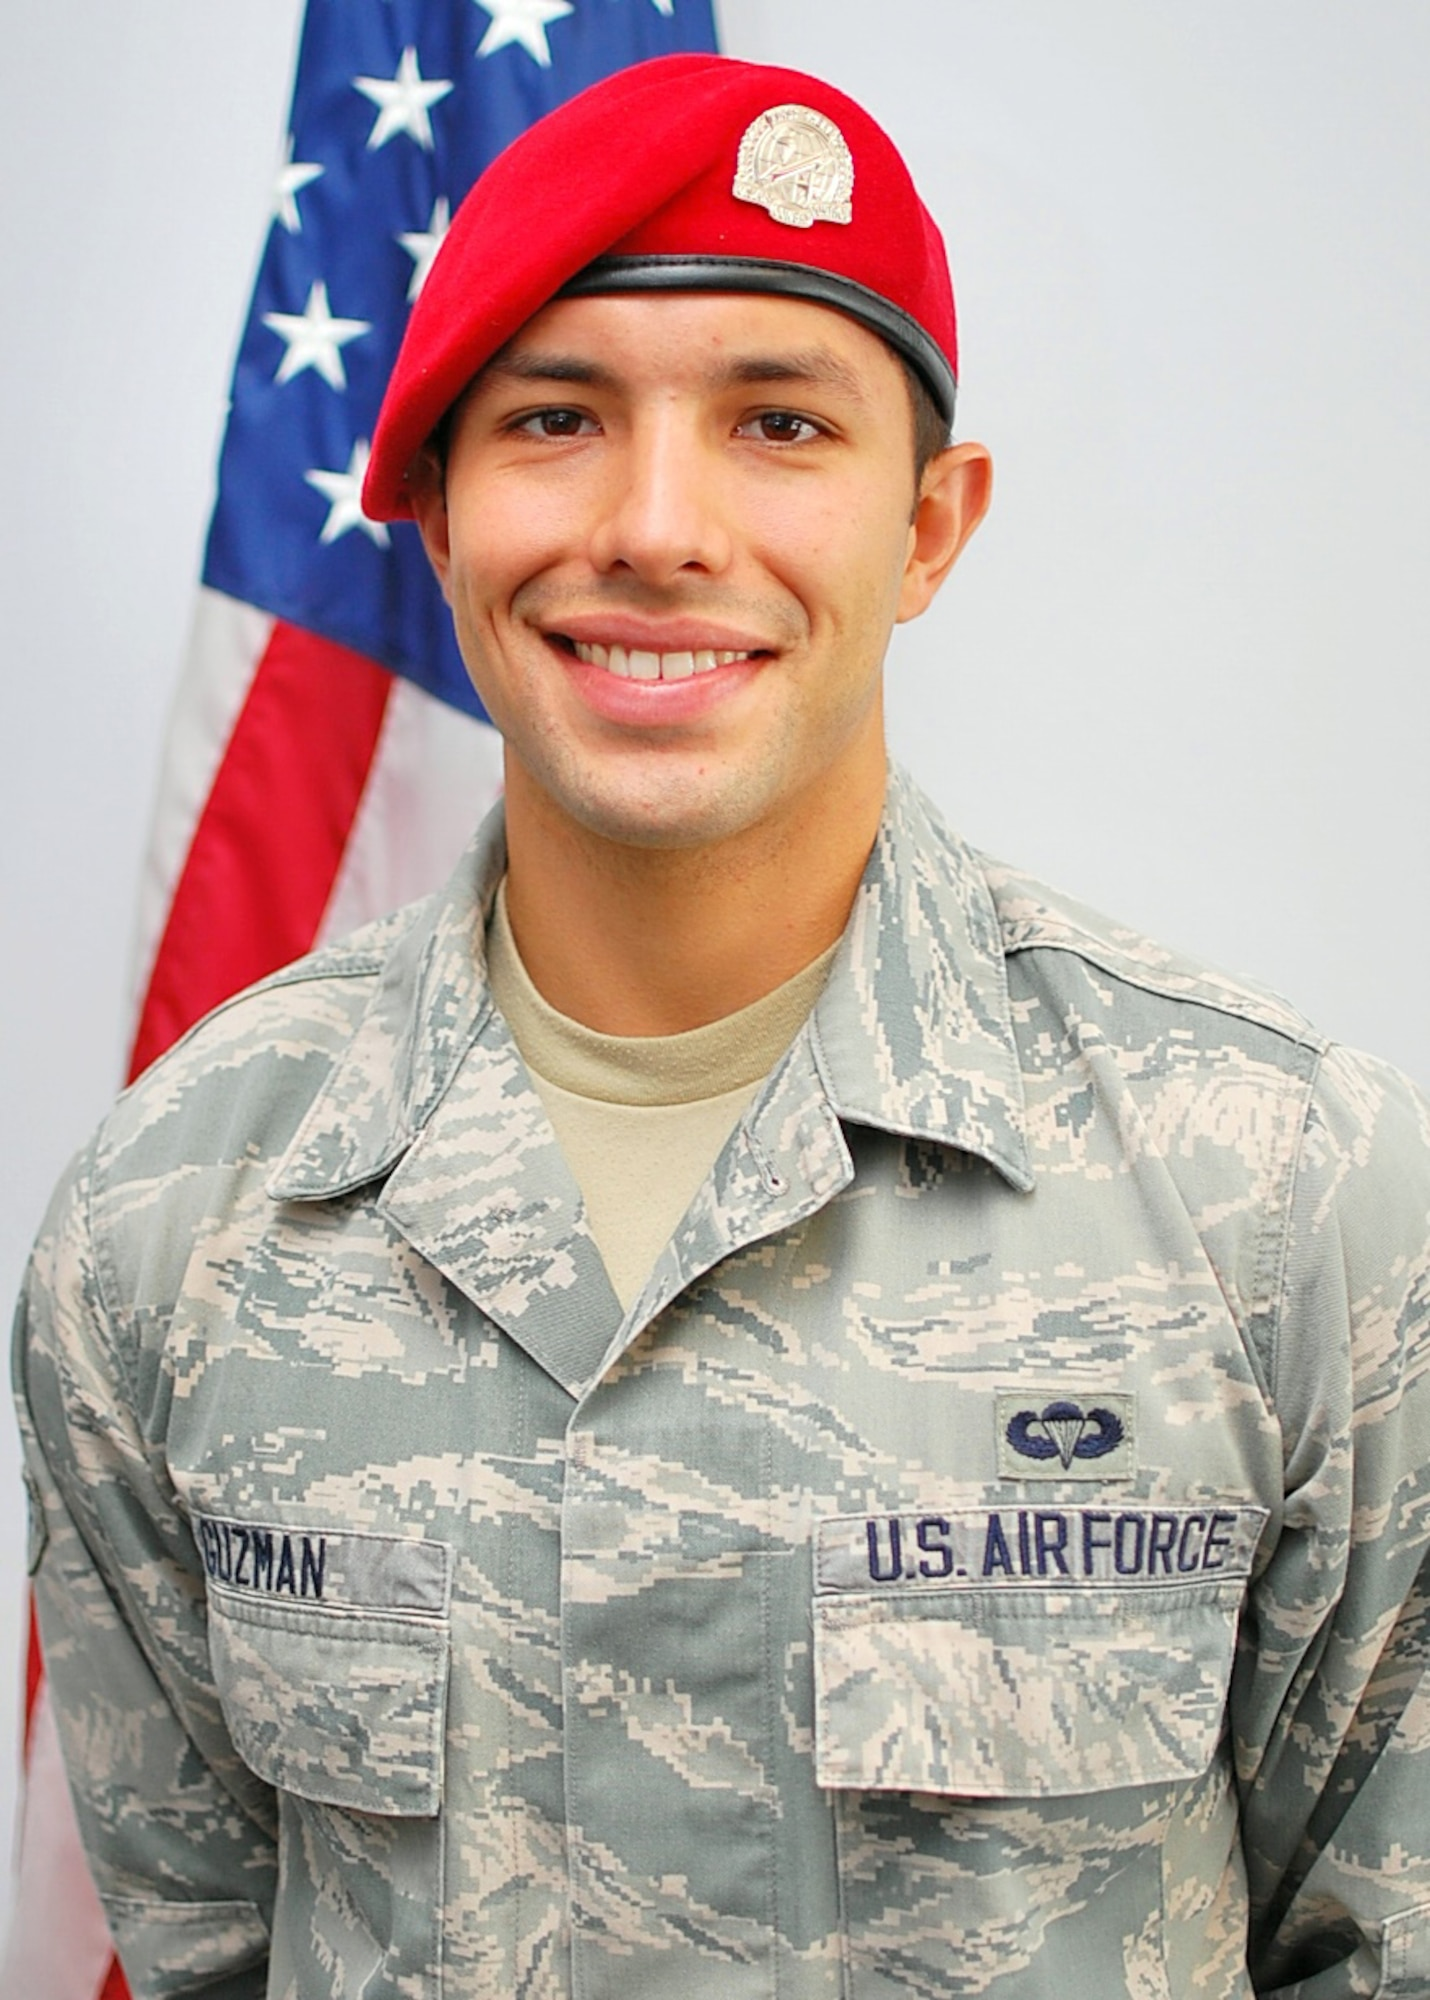 Airman 1st Class Michael Guzman earned the coveted scarlet beret of a combat controller Sept.12, 2013, at Fort Bragg, N.C., after 16 months of intense military training.